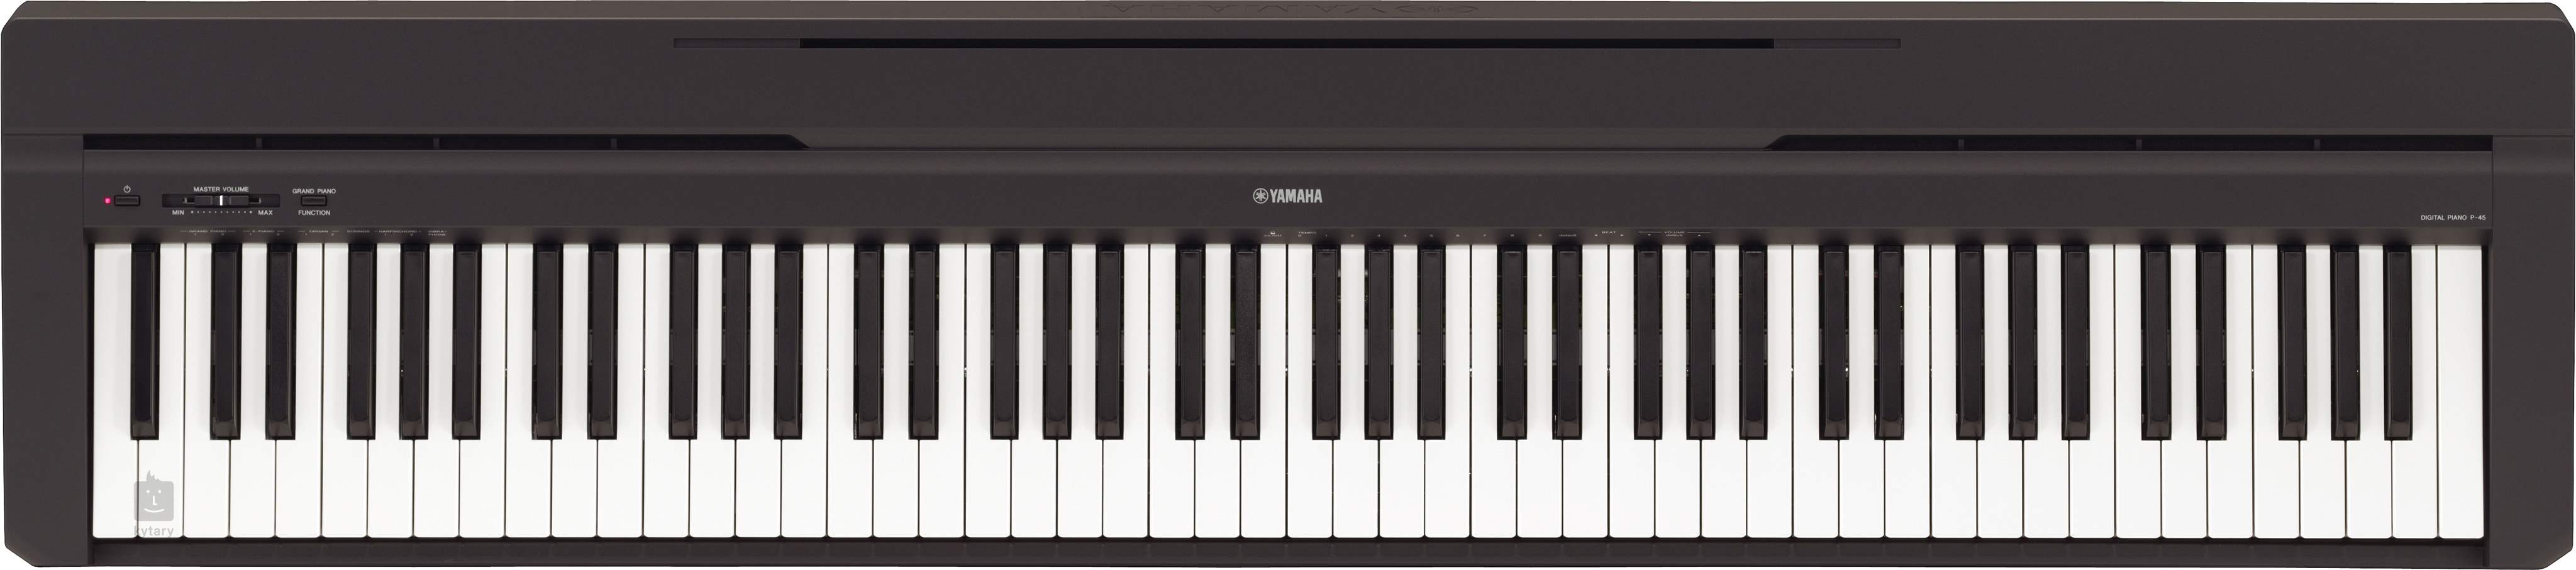 yamaha p 45b p enosn digit ln stage piano. Black Bedroom Furniture Sets. Home Design Ideas